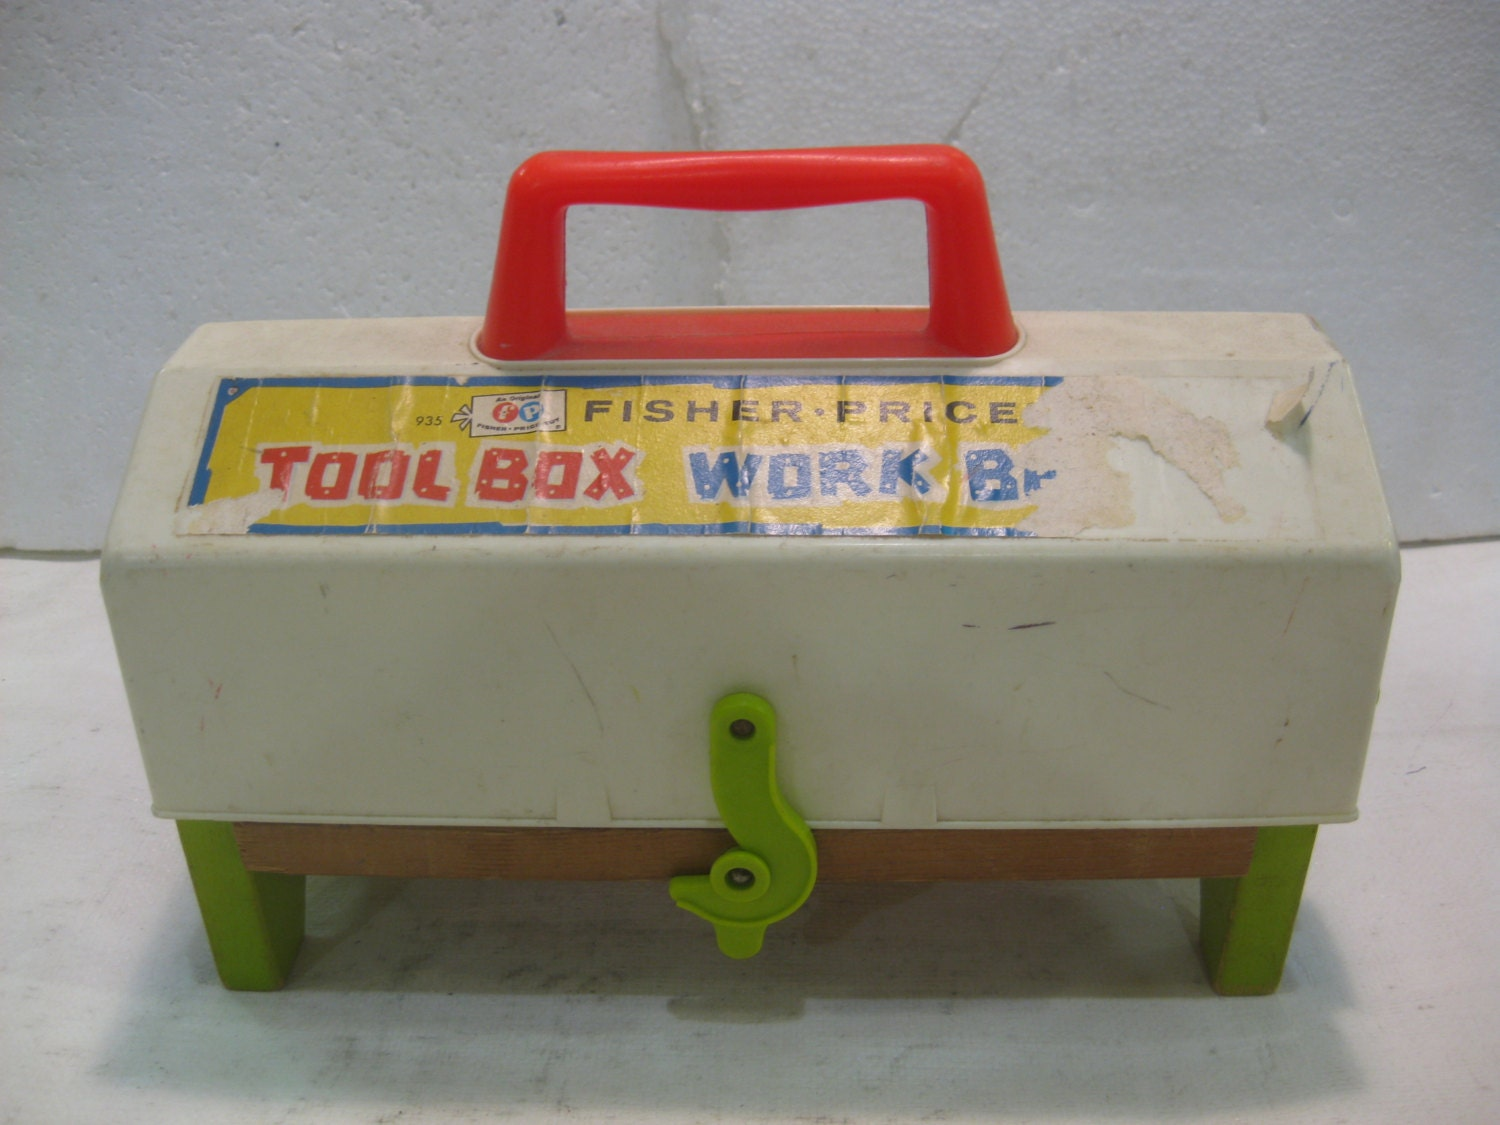 1969 fisher price tool box work bench toy 935 fp22 Fisher price tool bench